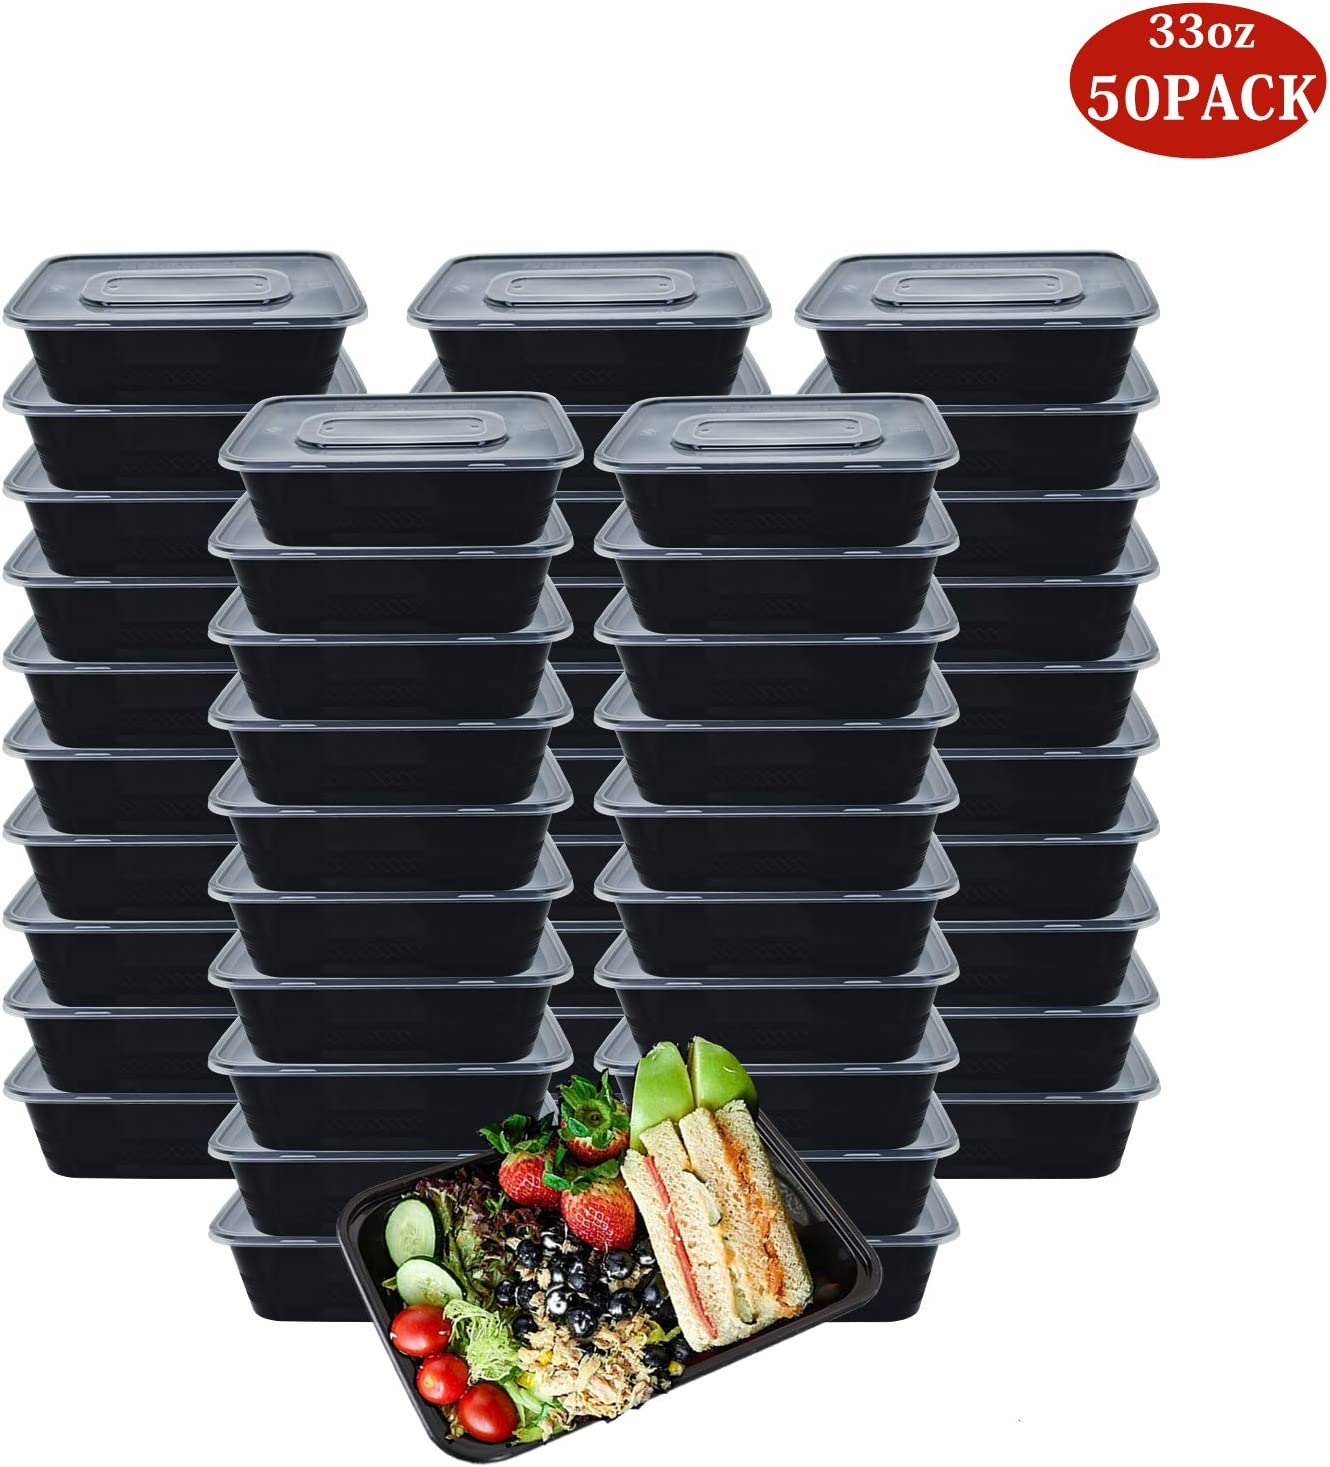 HOMEE Meal Prep Containers 50 Pack/ 33 oz Reusable Food Storage Containers Bento Lunch Box with Lids Made of Plastic, Stackable, Microwavable, Freezer and Dishwasher Safe Use